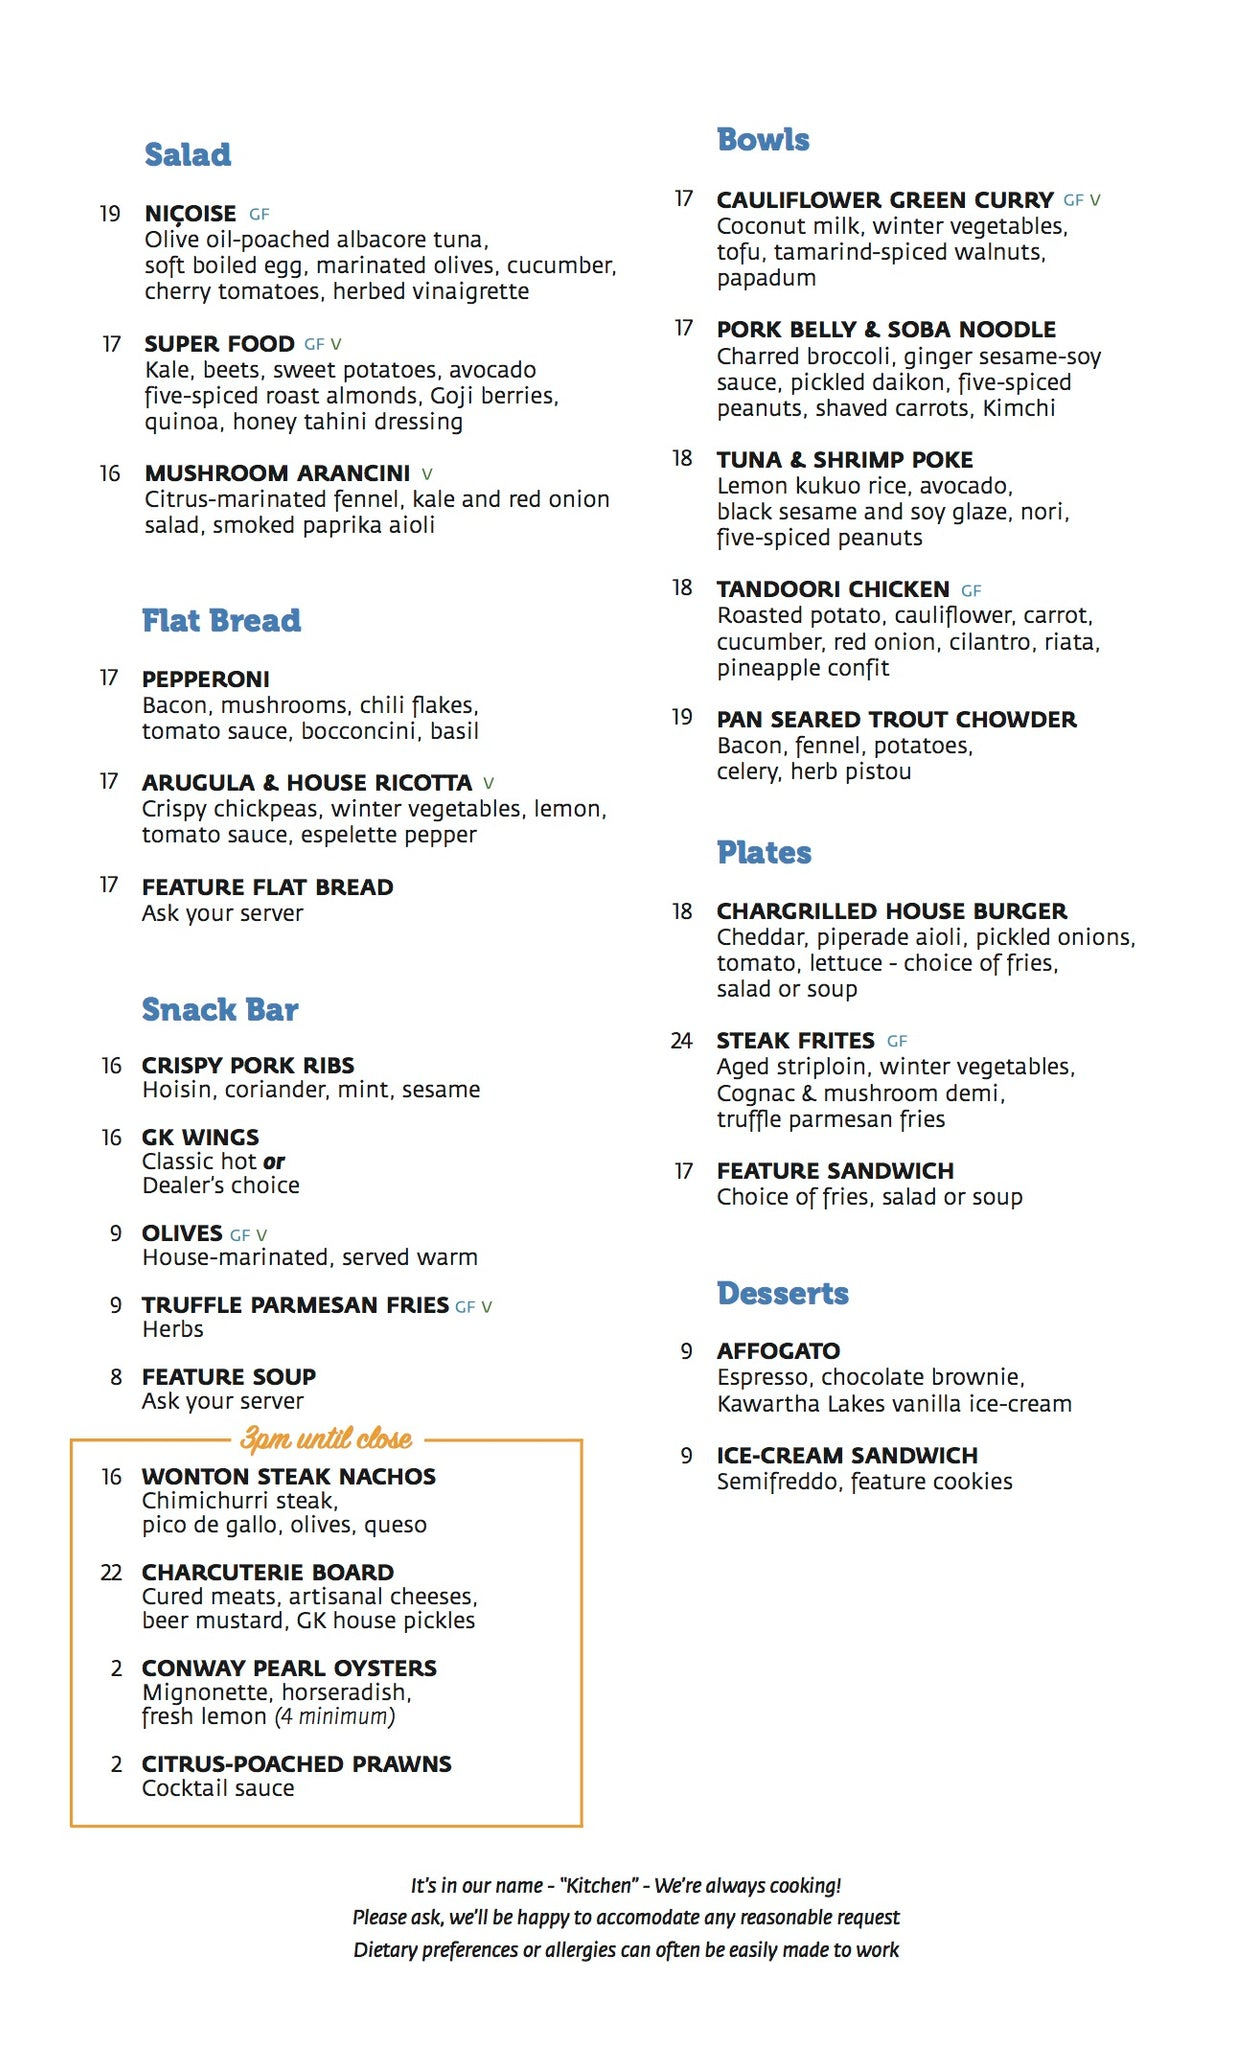 Grounded Menu